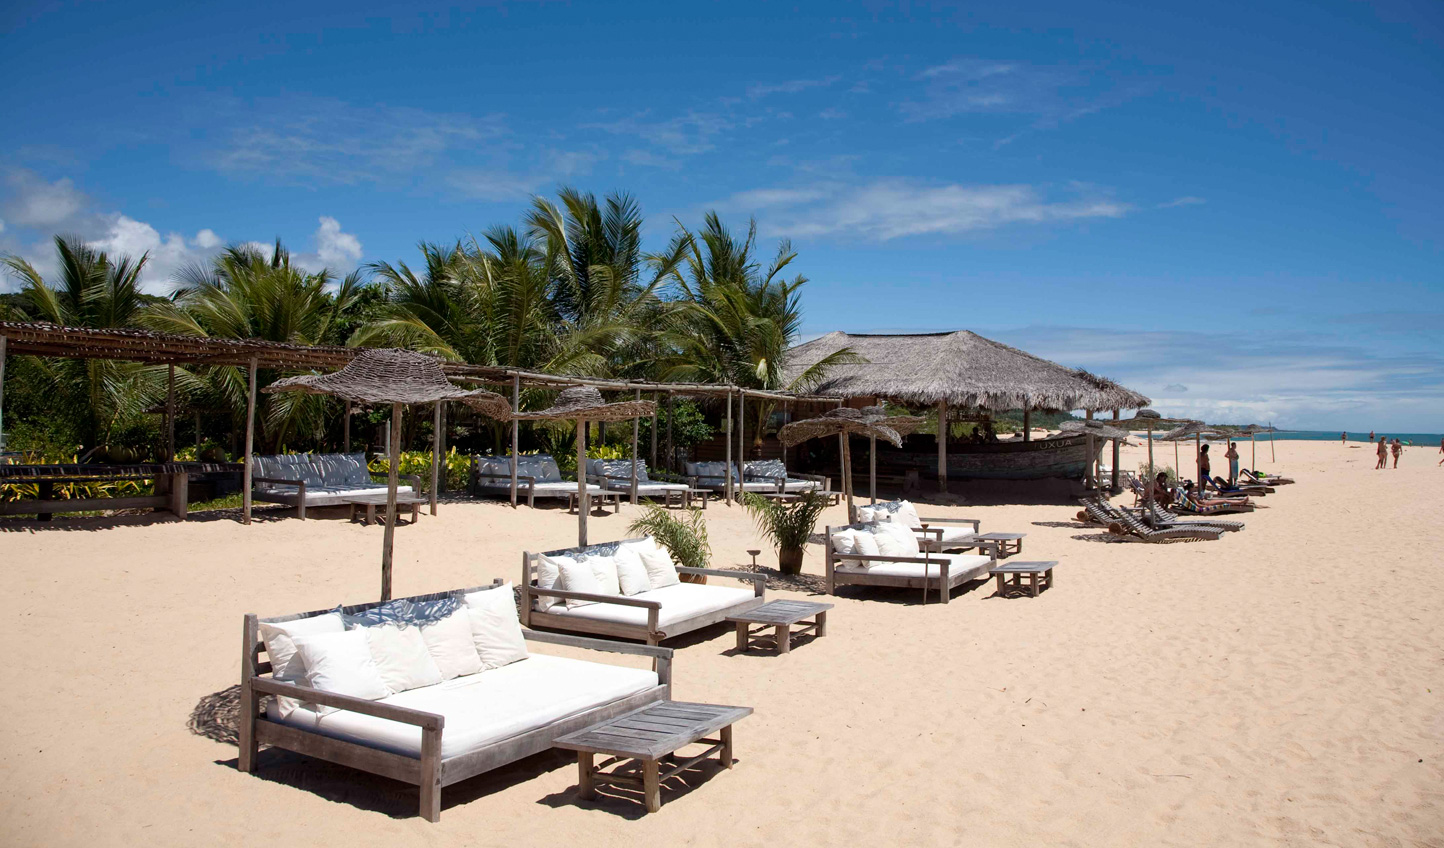 Stroll down the tranquil beaches of Trancoso